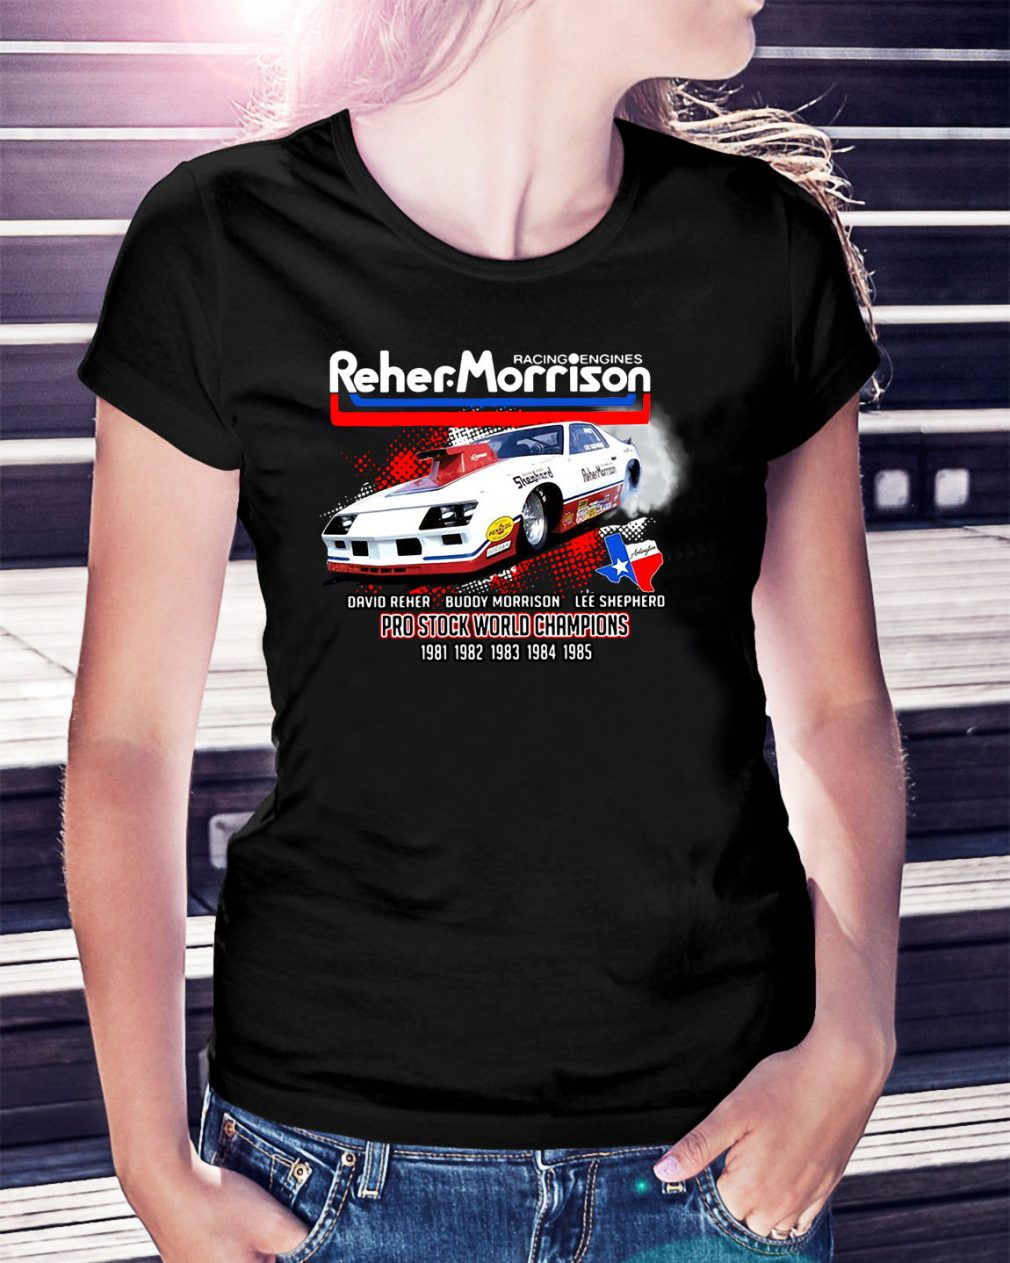 Racing engines Reher Morrison Devid Reher Buddy Morrison Ladies Tee